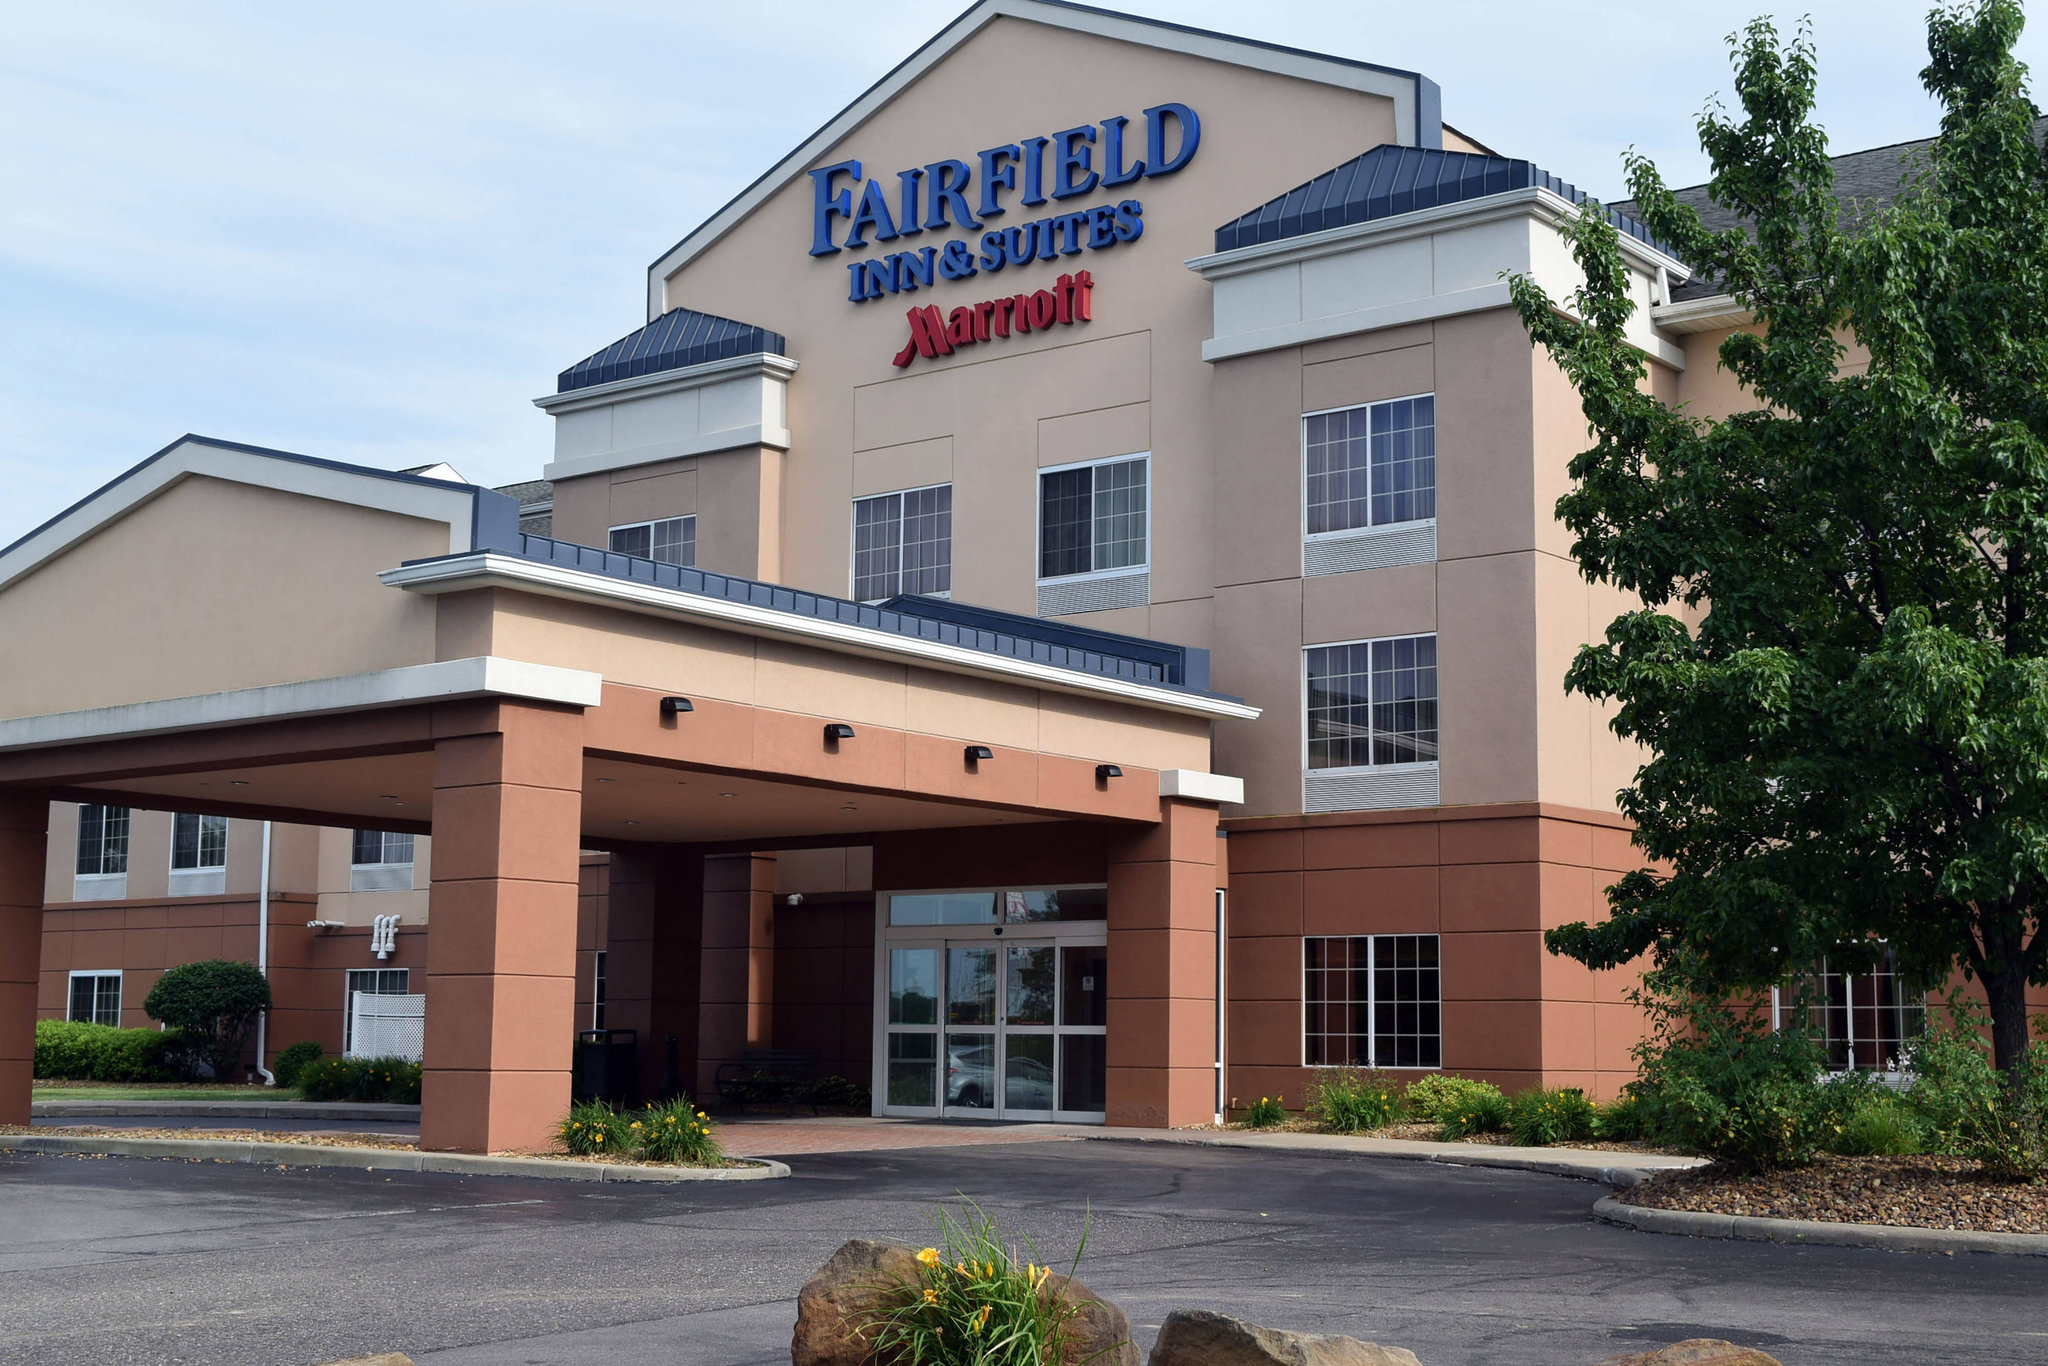 Fairfield Inn & Suites Youngstown